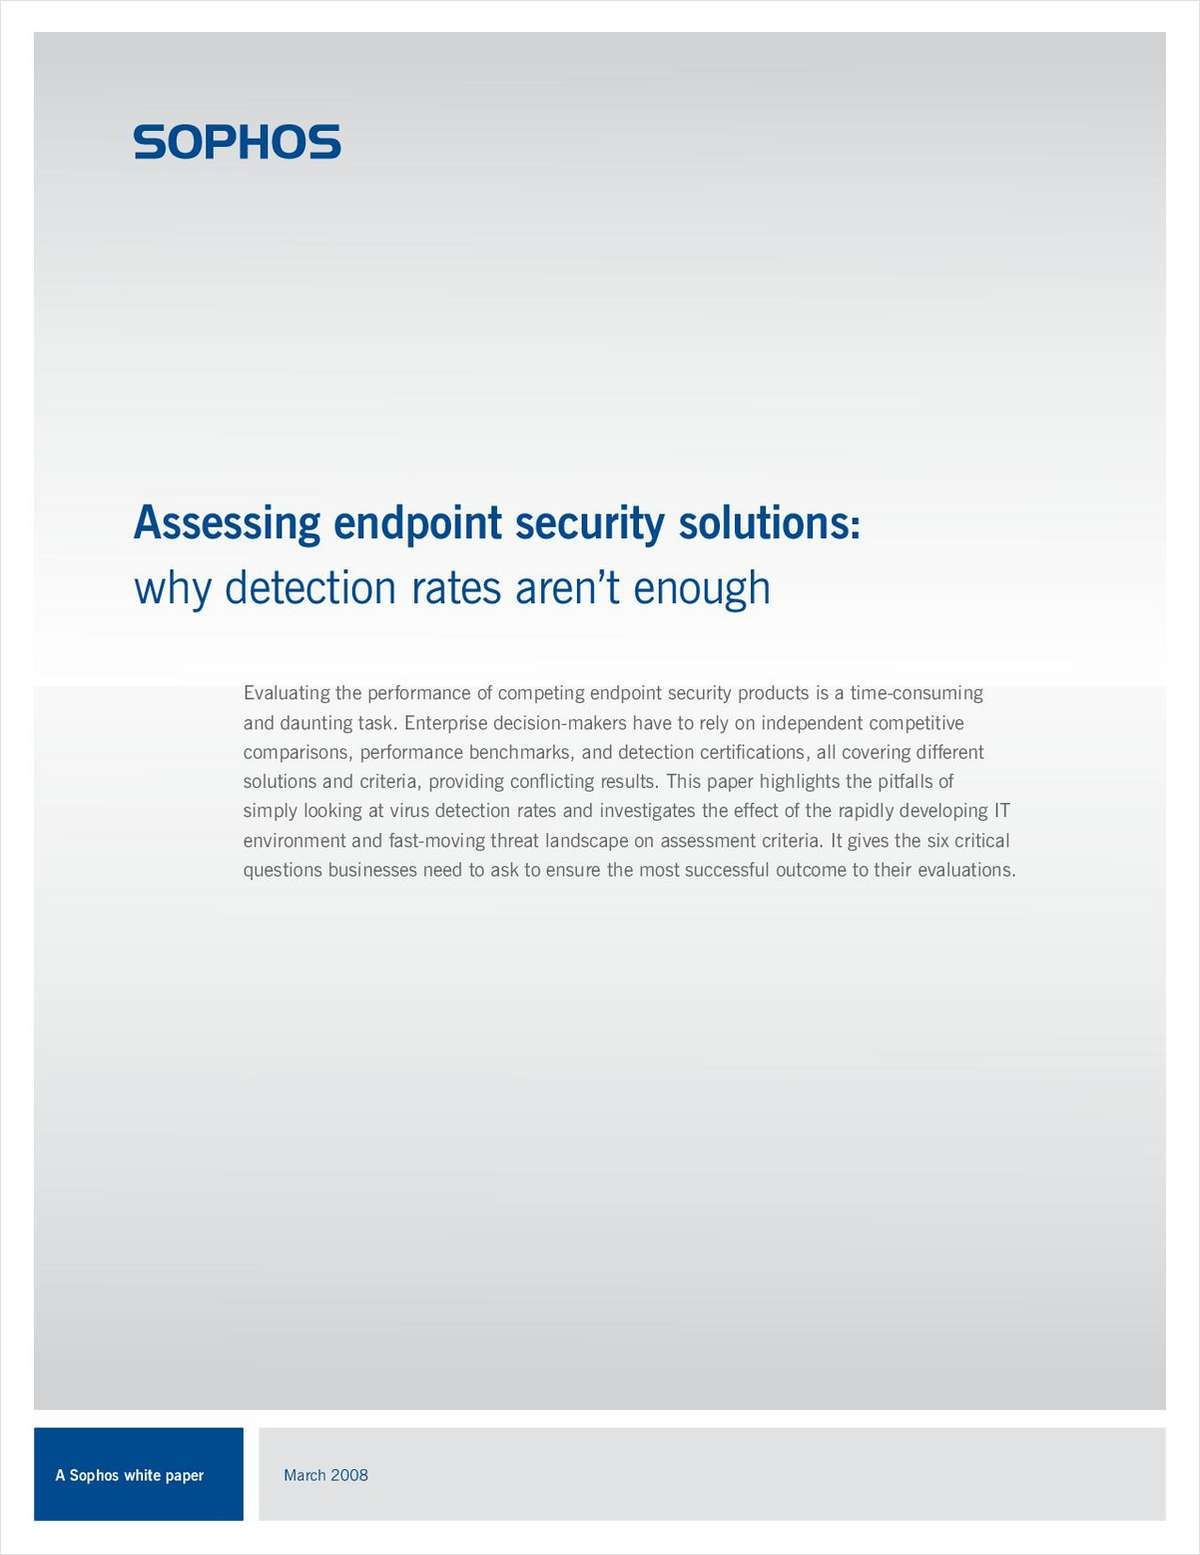 Assessing Endpoint Security Solutions: Why Detection Rates Aren't Enough